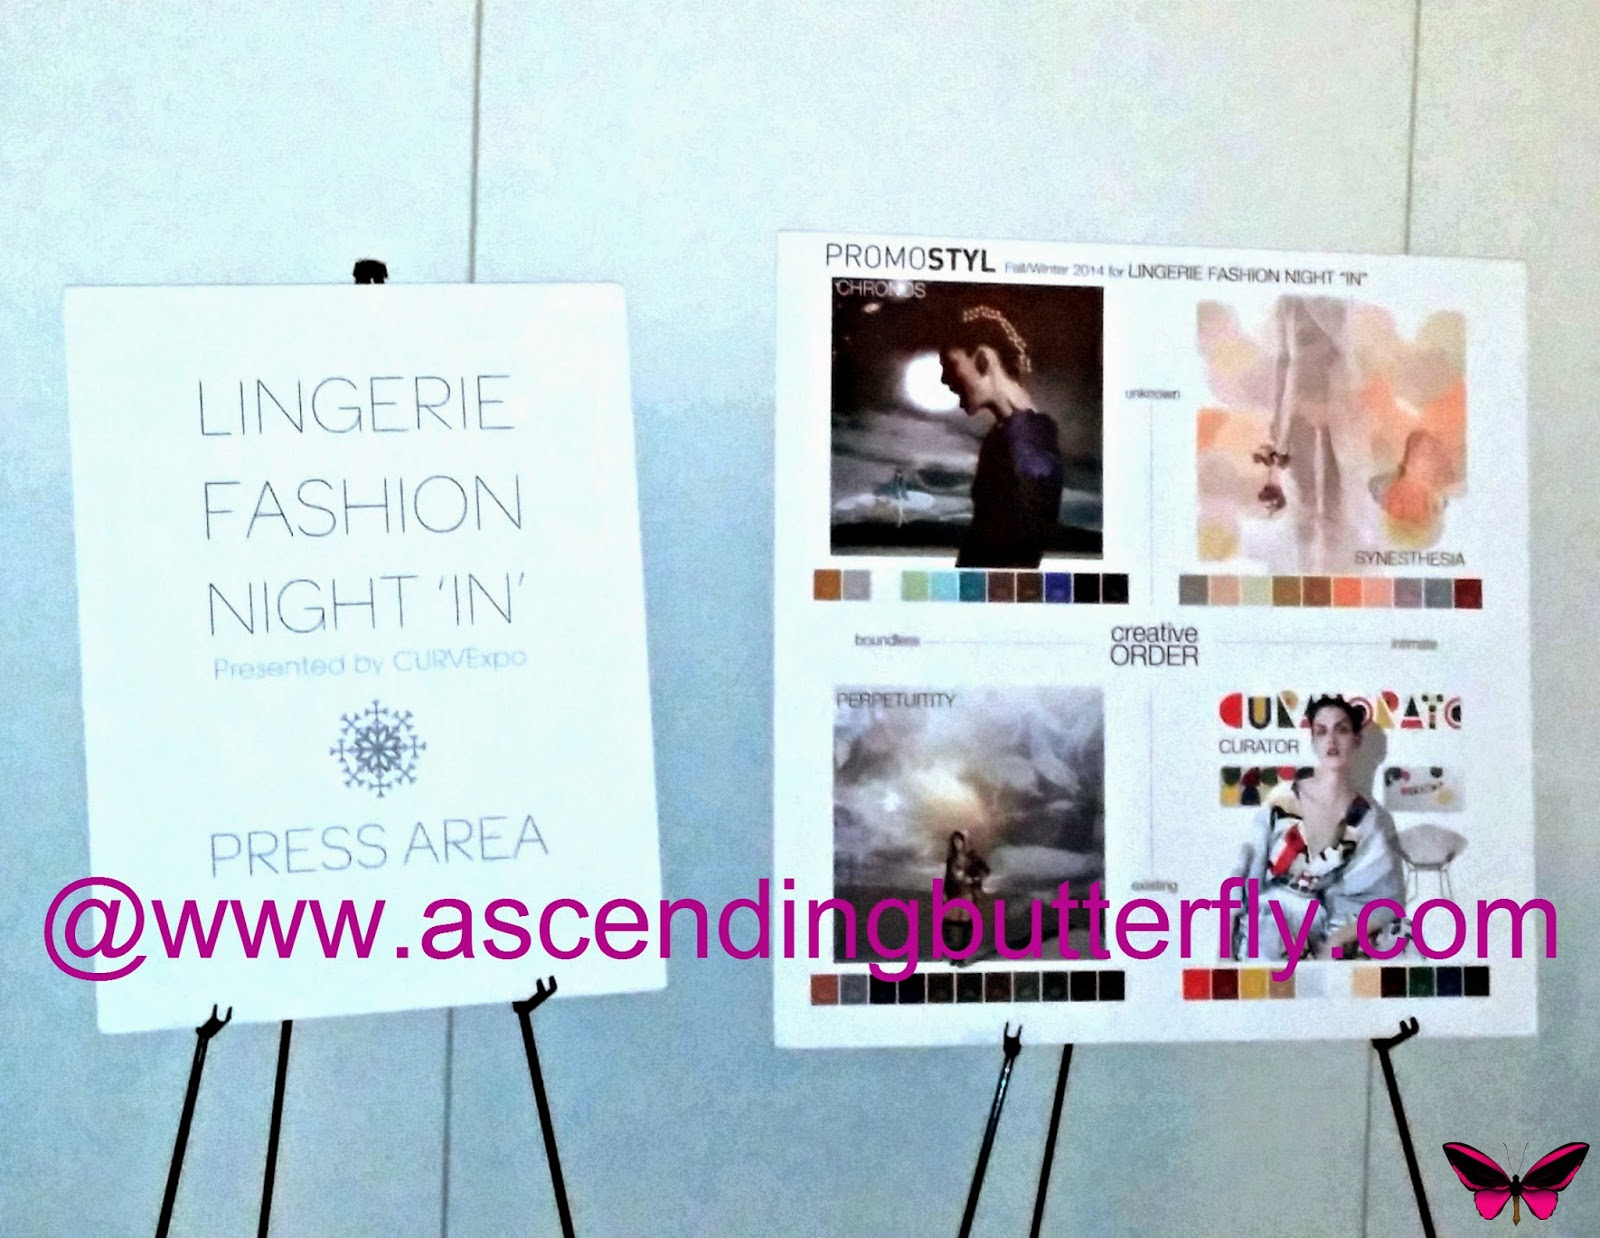 Lingerie Fashion Night 'IN' PROMOSTYL Press Preview